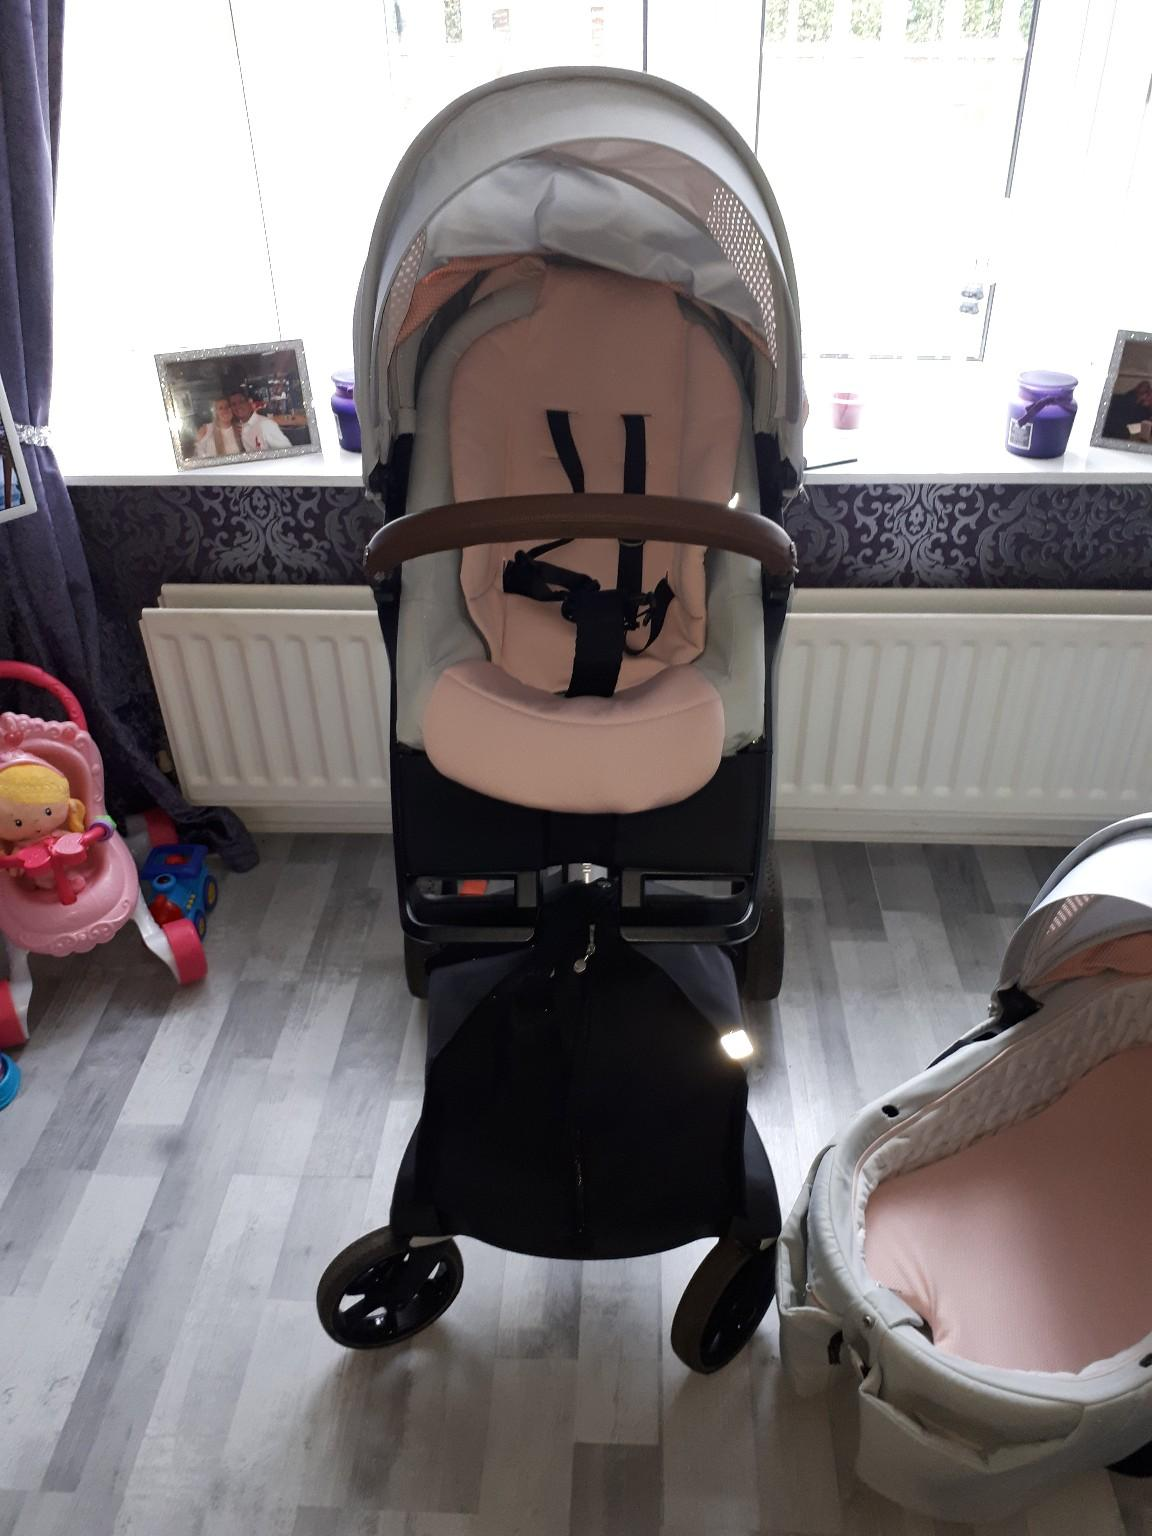 Baby Cots X2 Stokke V6 With Carry Cot In Wn8 Lancashire For £300 00 For